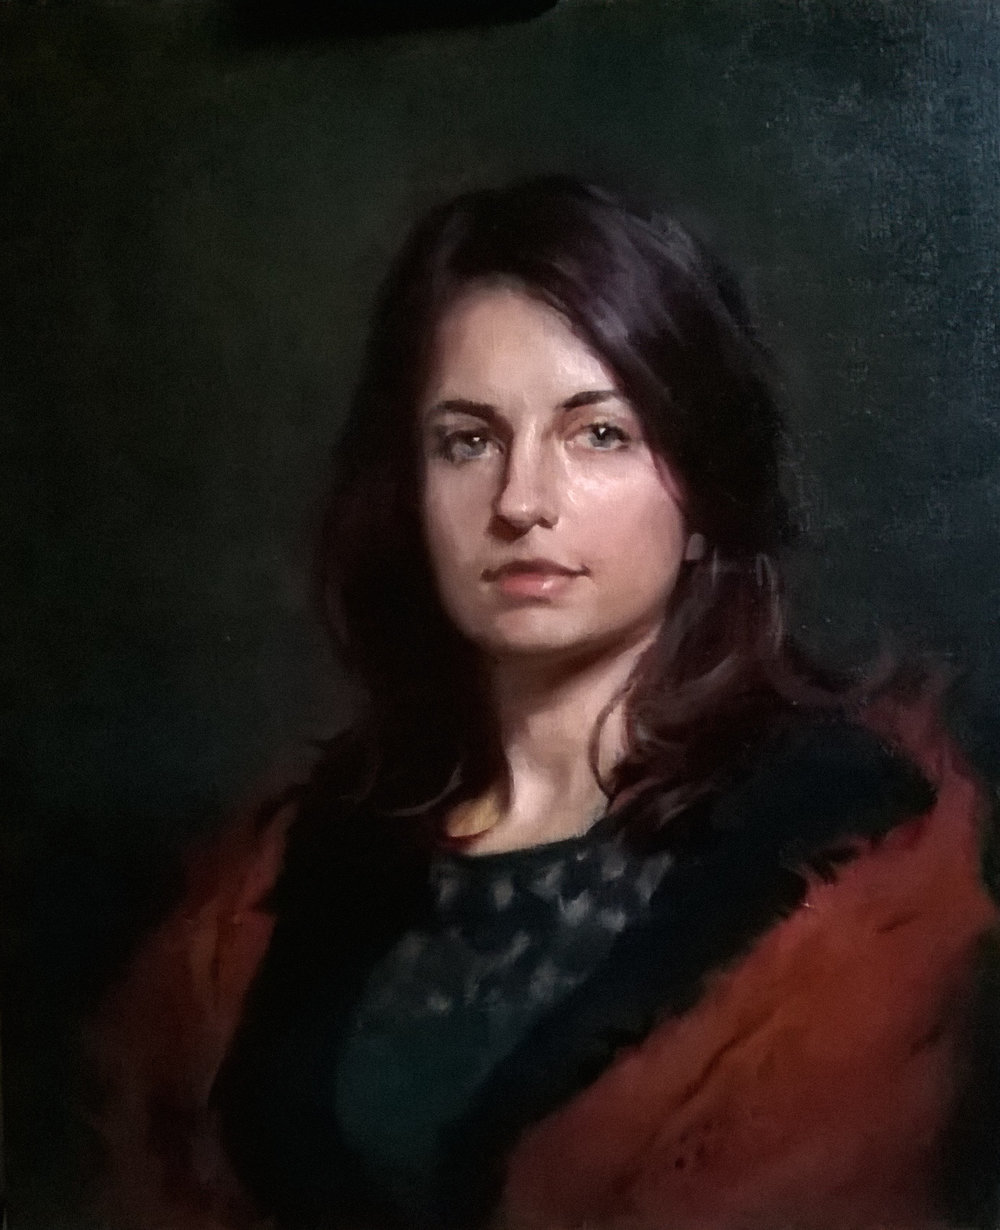 'Elisa' 60 cm x 50 cm Oil on linen